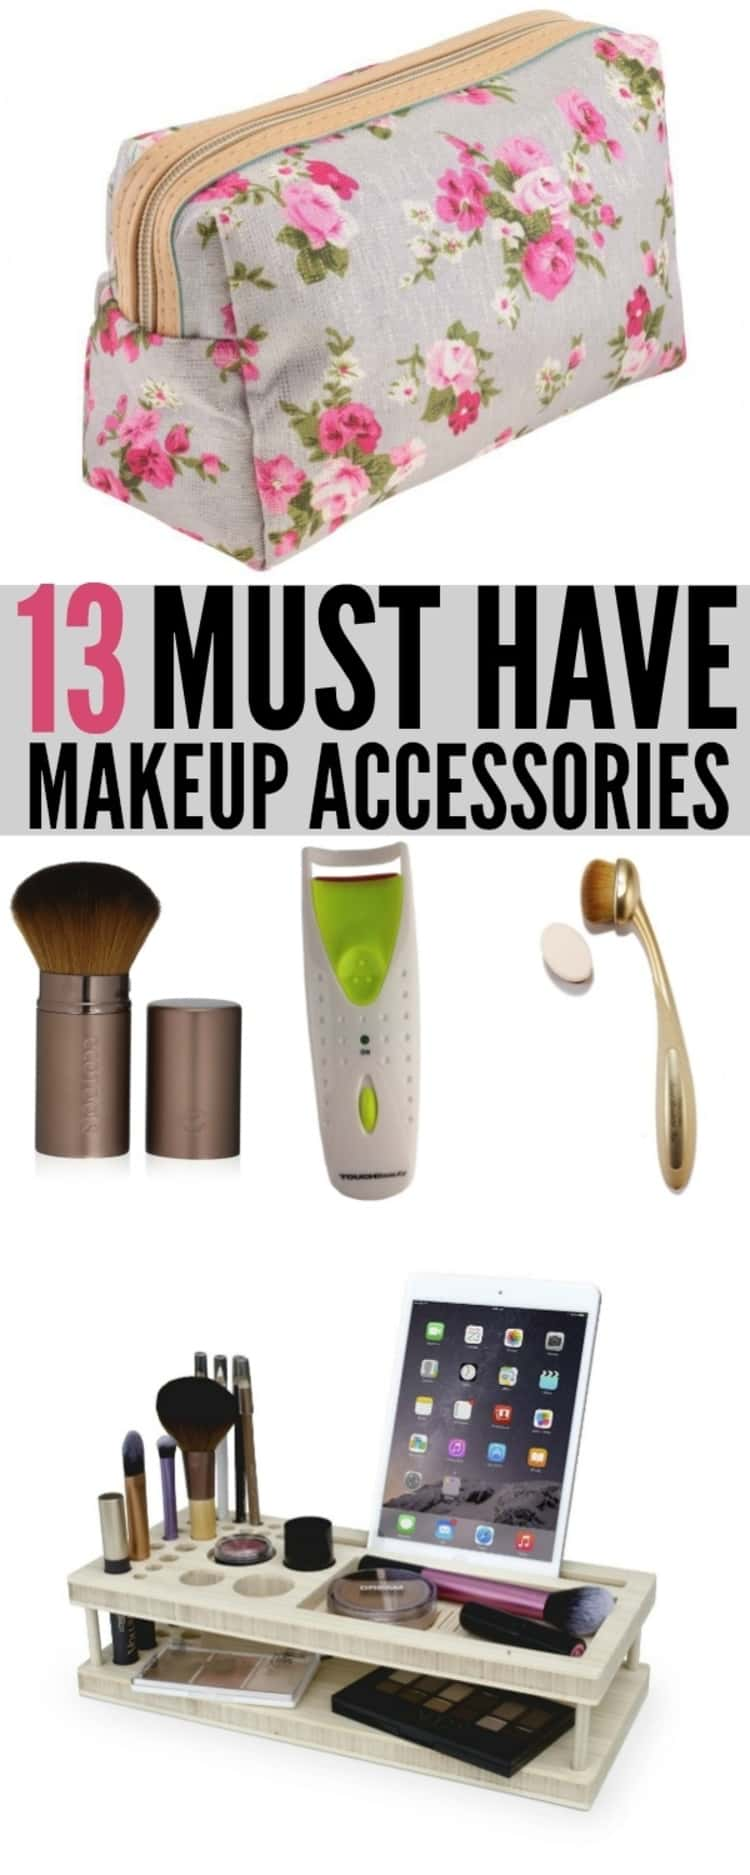 Must have makeup accessories